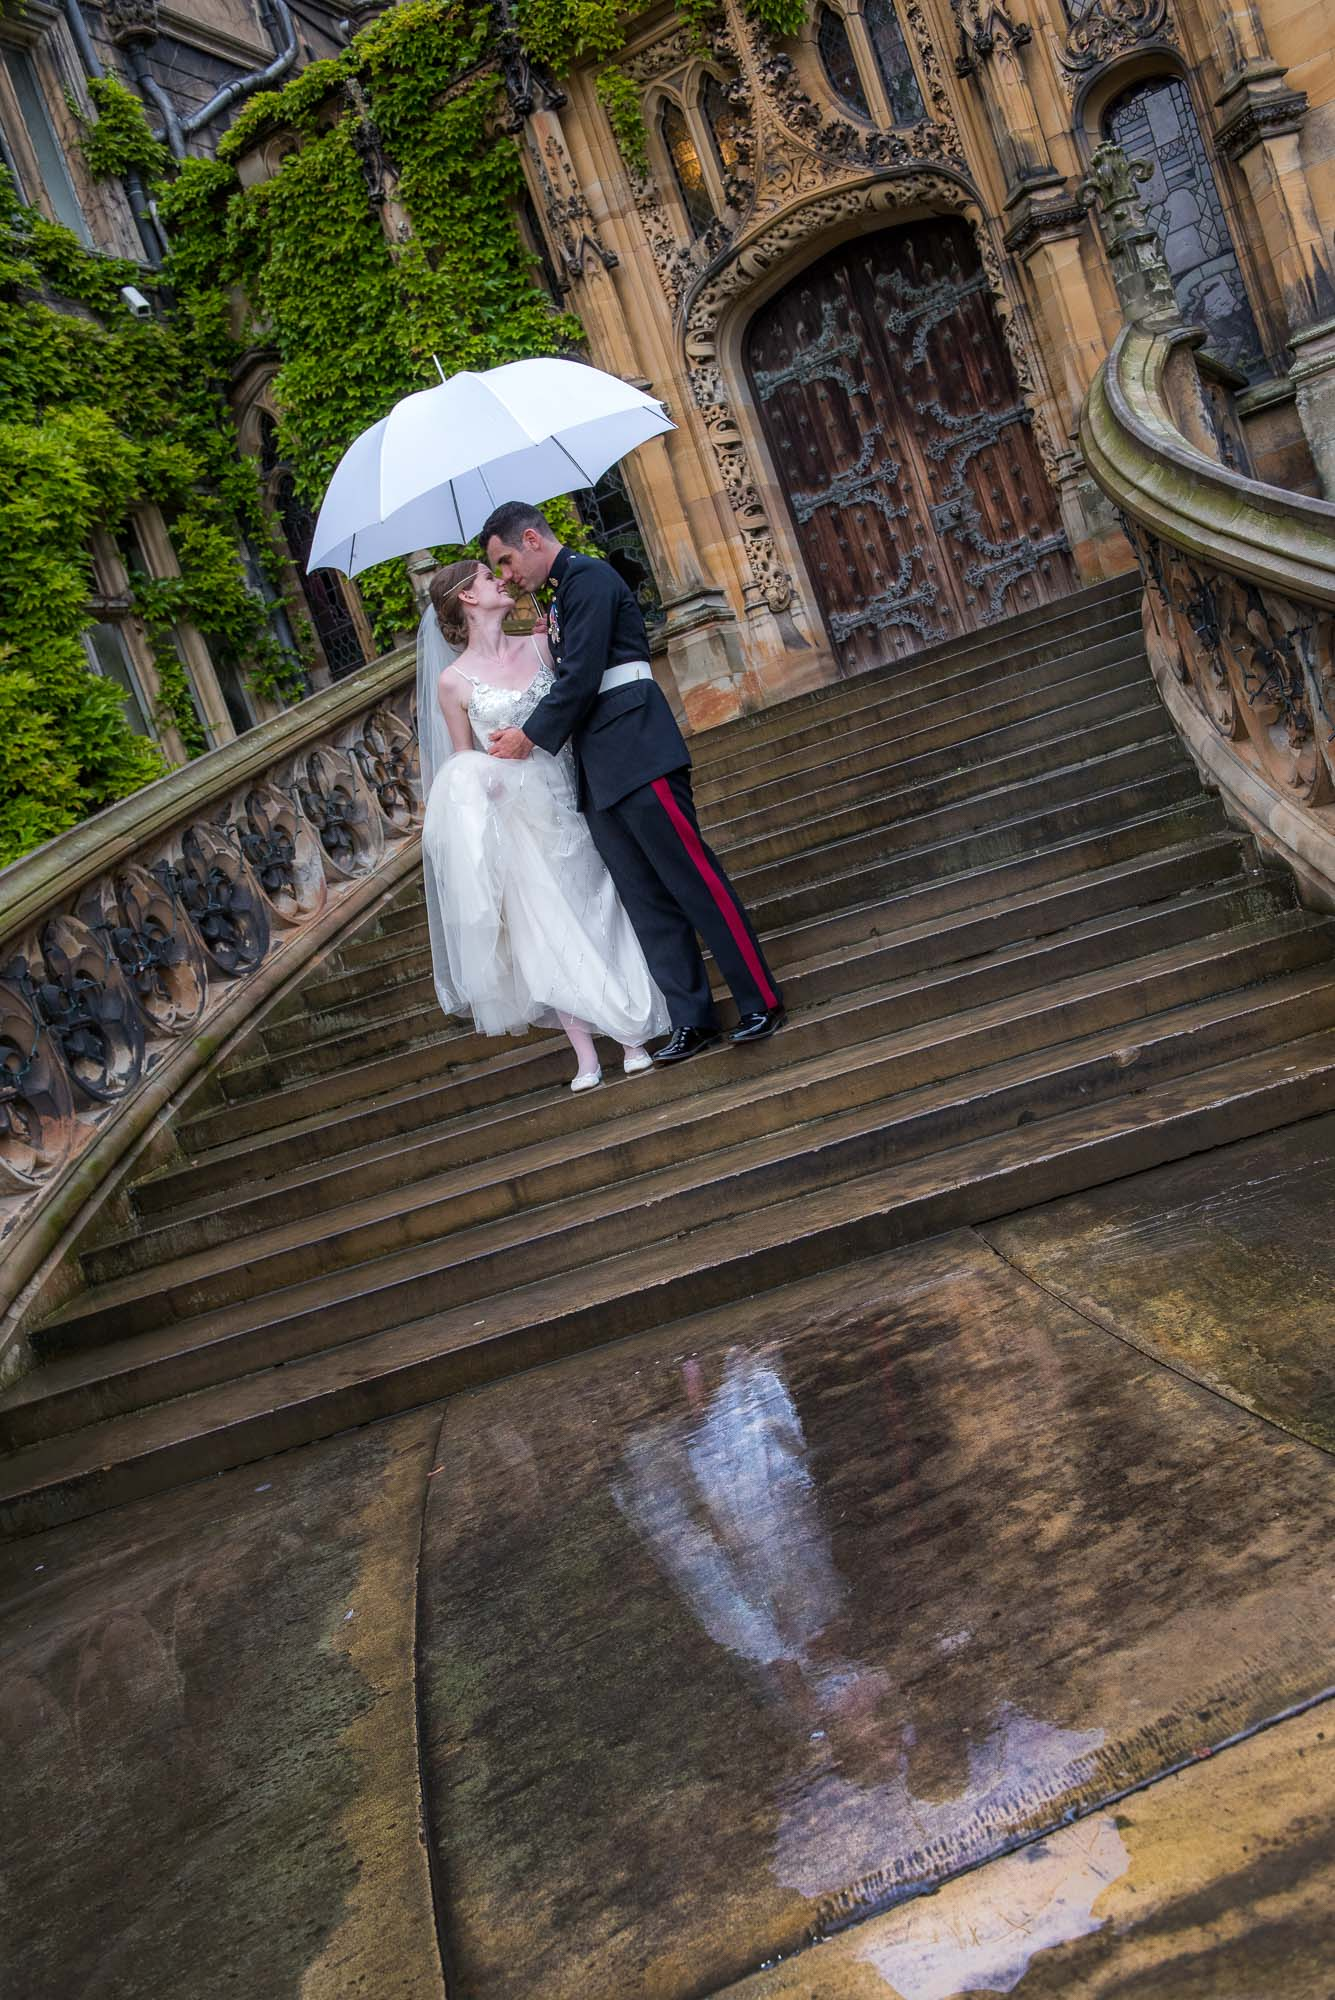 Bride and Groom reflection wedding photograph at Carlton Towers